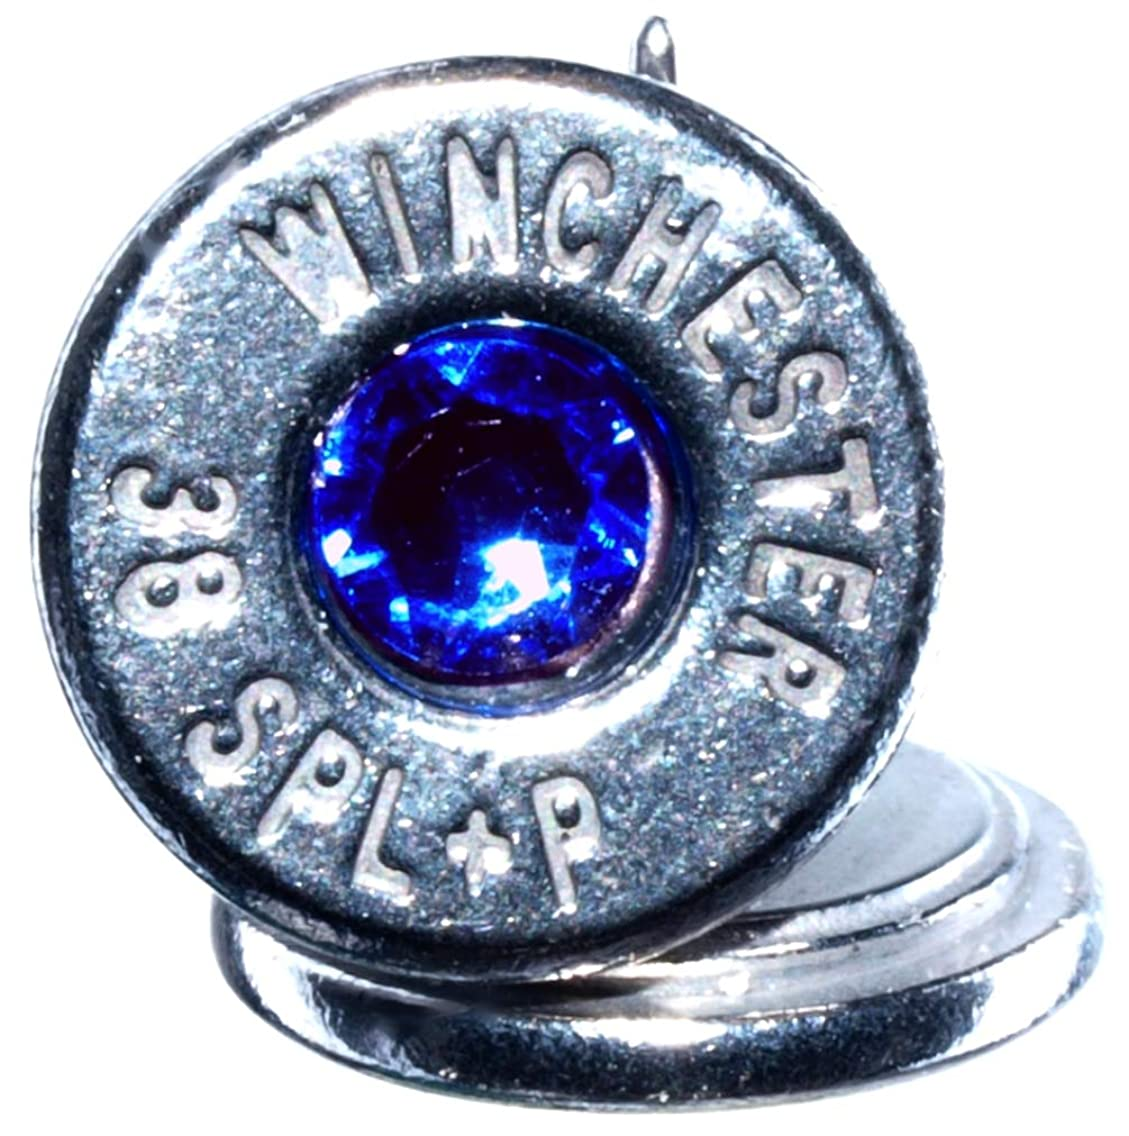 38 Special+P Palladium Plated Stud Earrings with Swarovski Crystals- Lt Blue (Winchester)